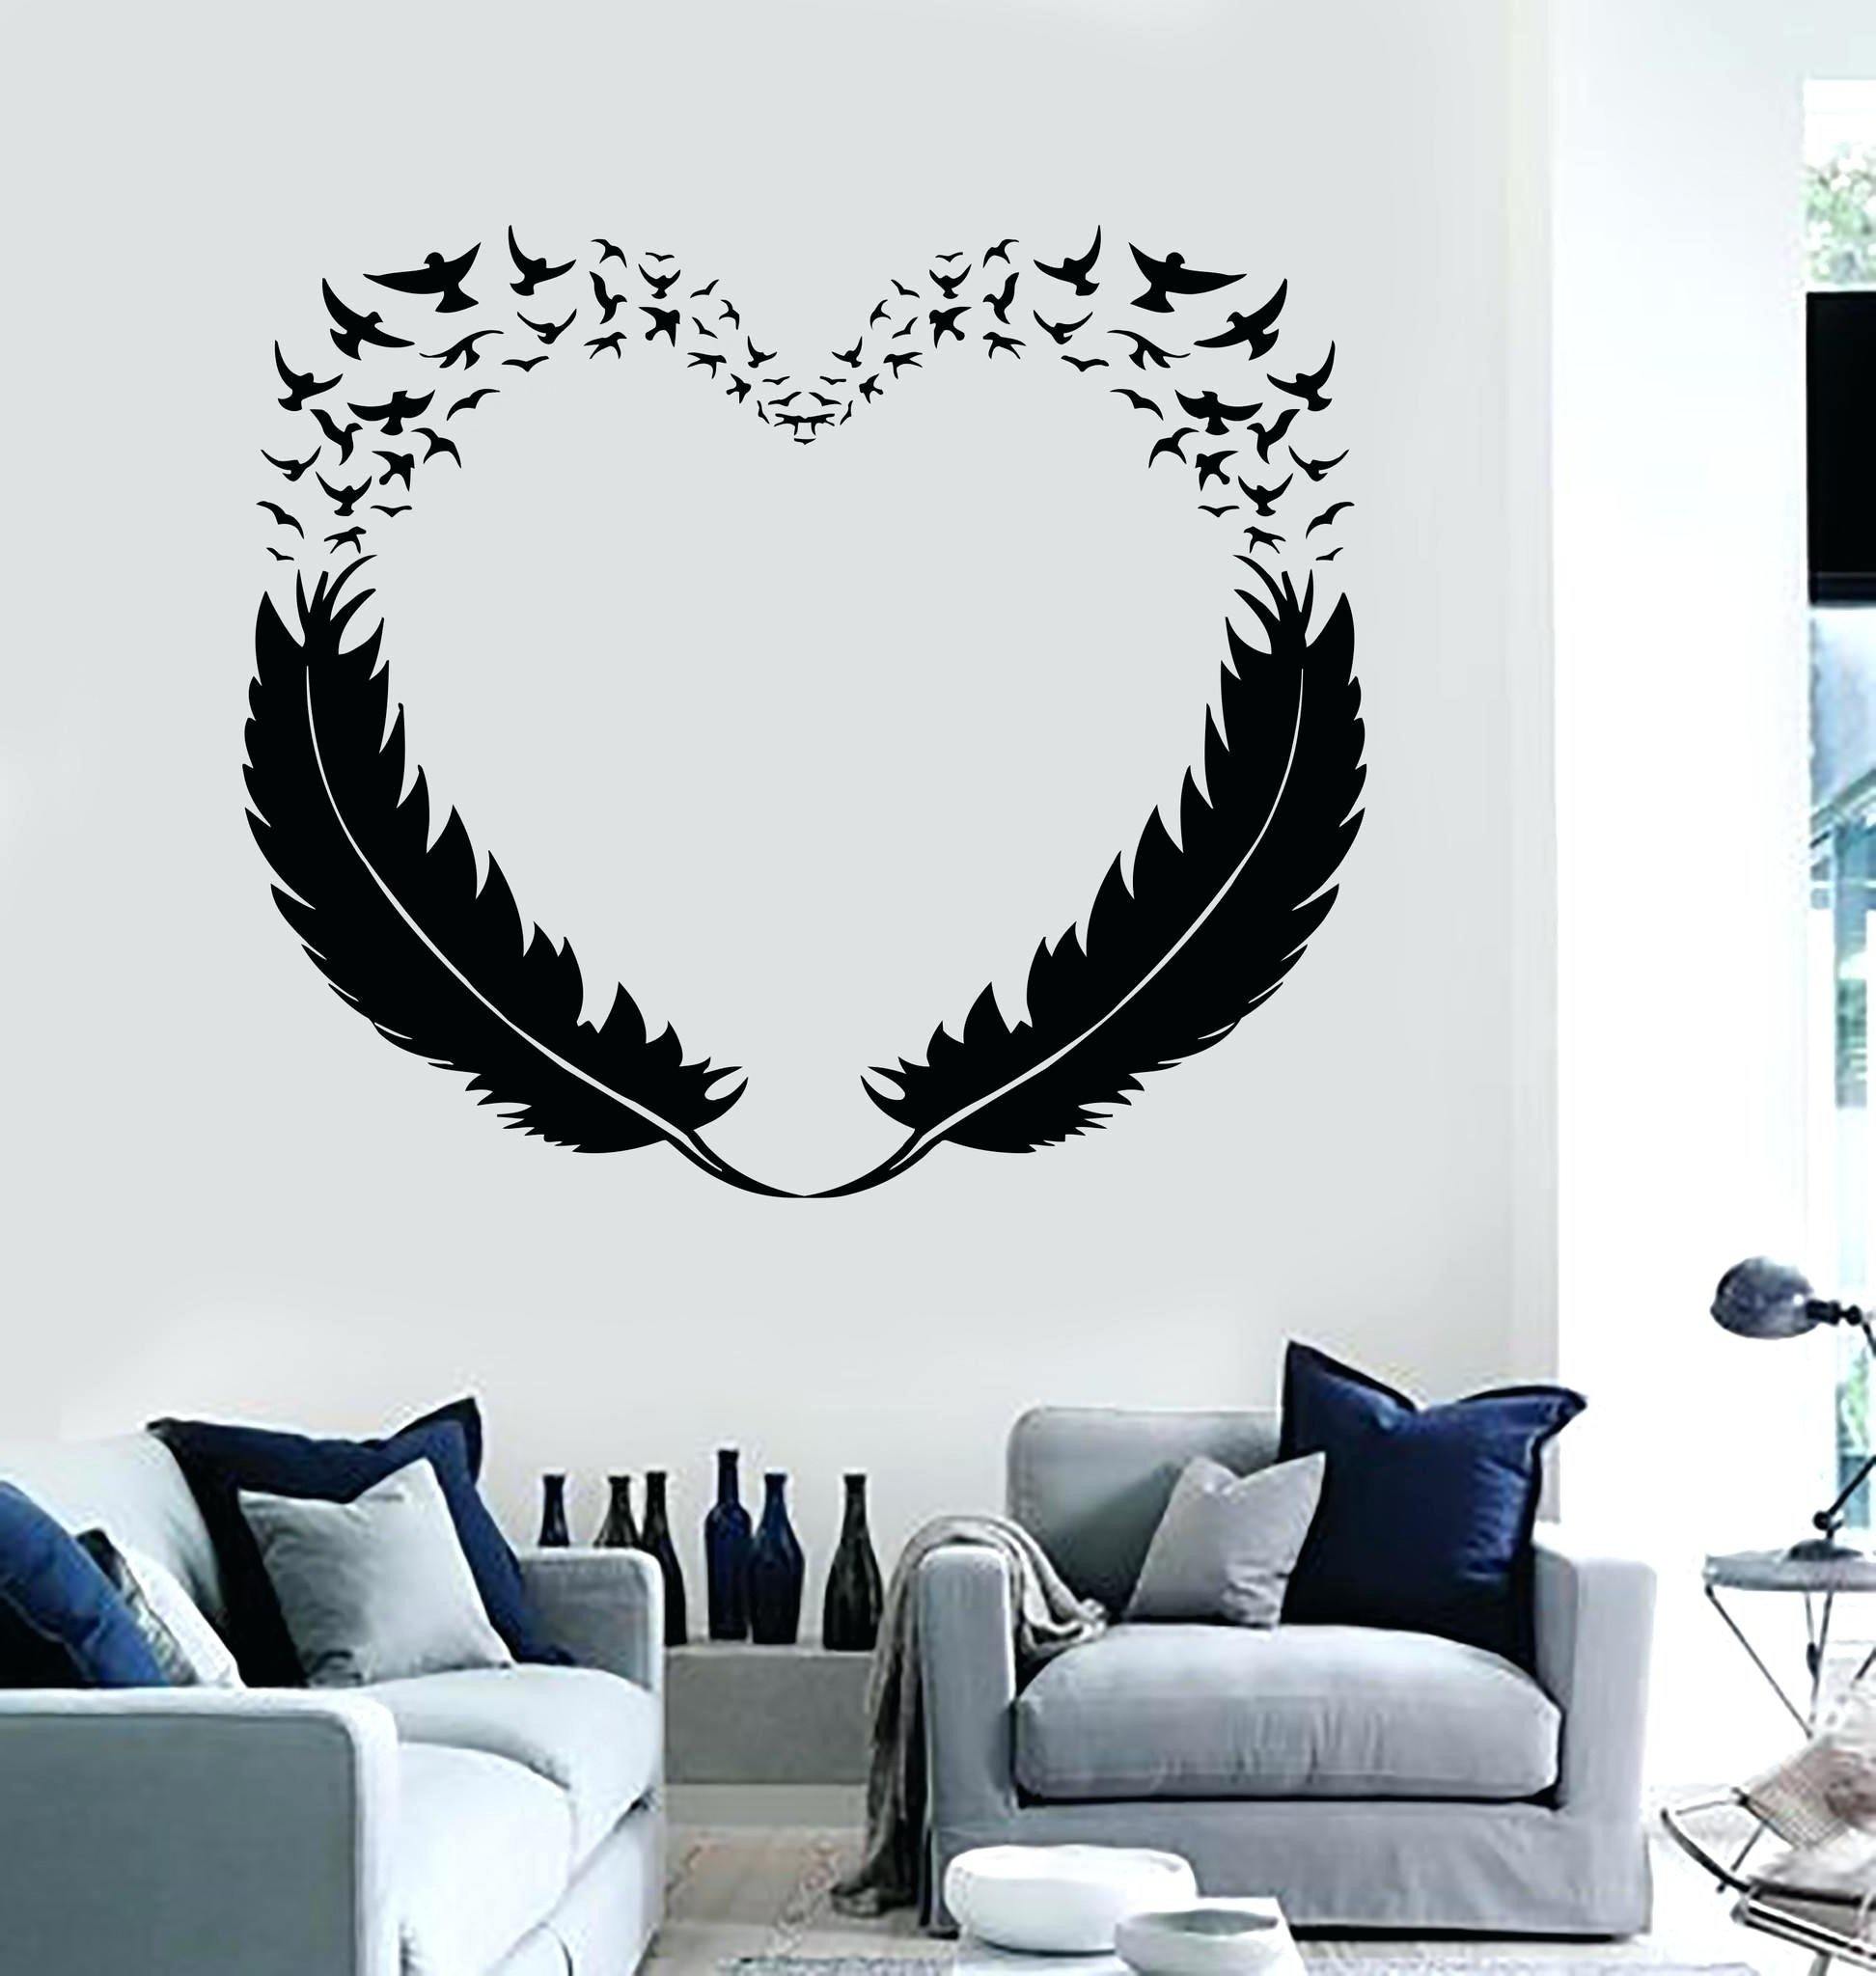 Cool Wall Decor for Guys Fresh 15 Ideas Of Cool Wall Art for Guys